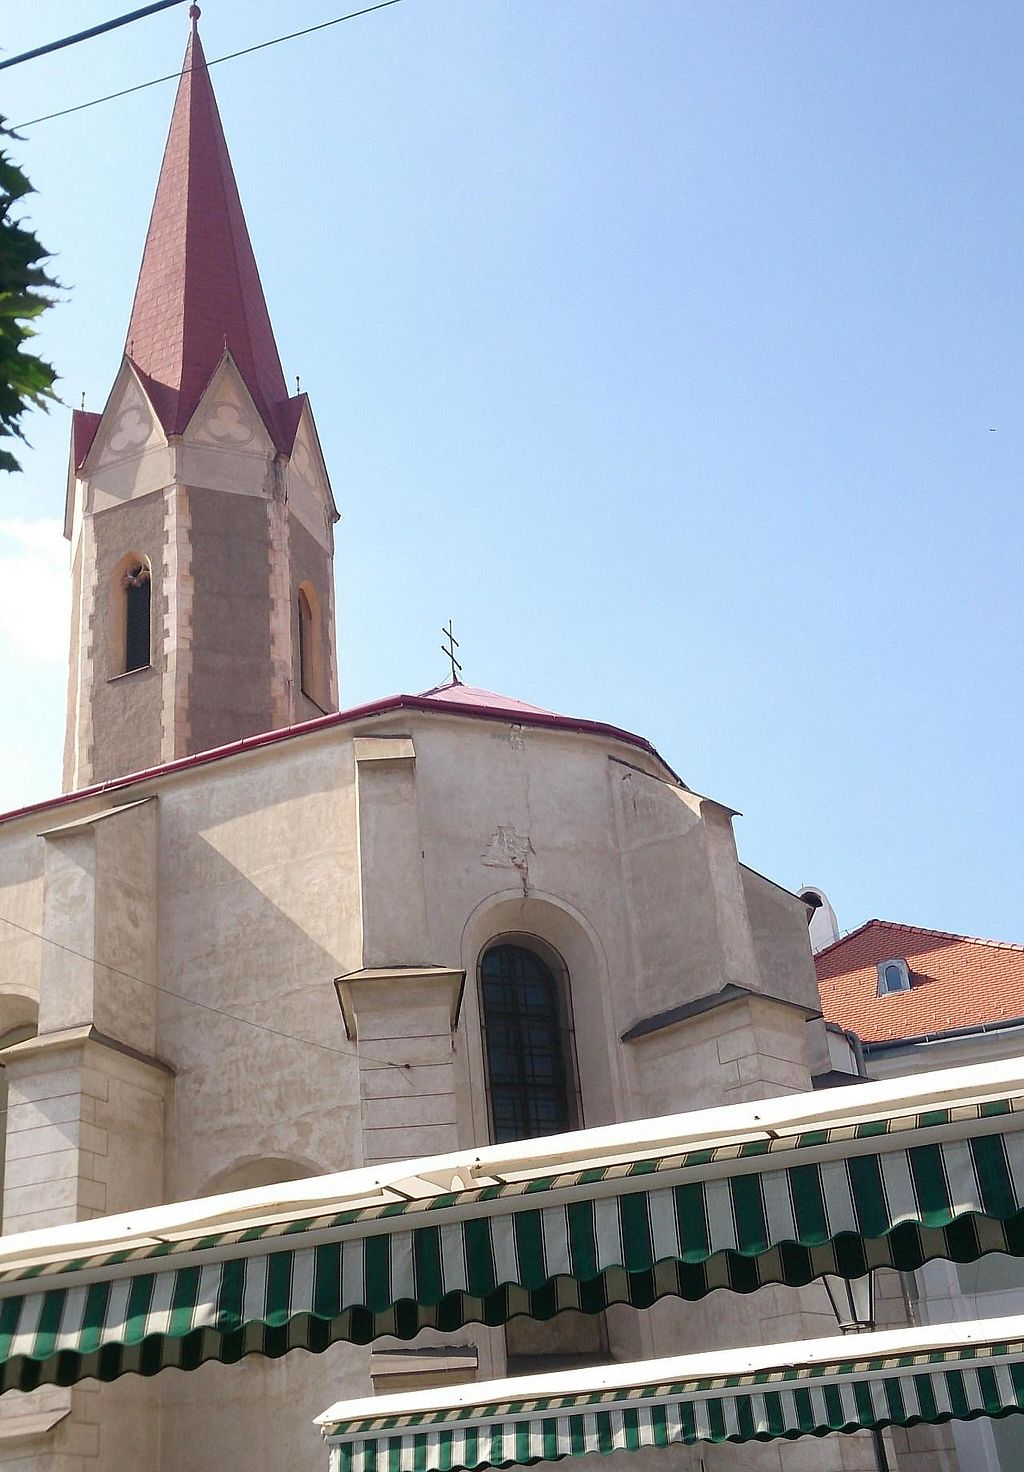 "Photo of San Domenico Caffe  by <a href=""/members/profile/Ruru"">Ruru</a> <br/>The Dominican Church that lends San Domenico its name <br/> August 26, 2014  - <a href='/contact/abuse/image/48999/243729'>Report</a>"